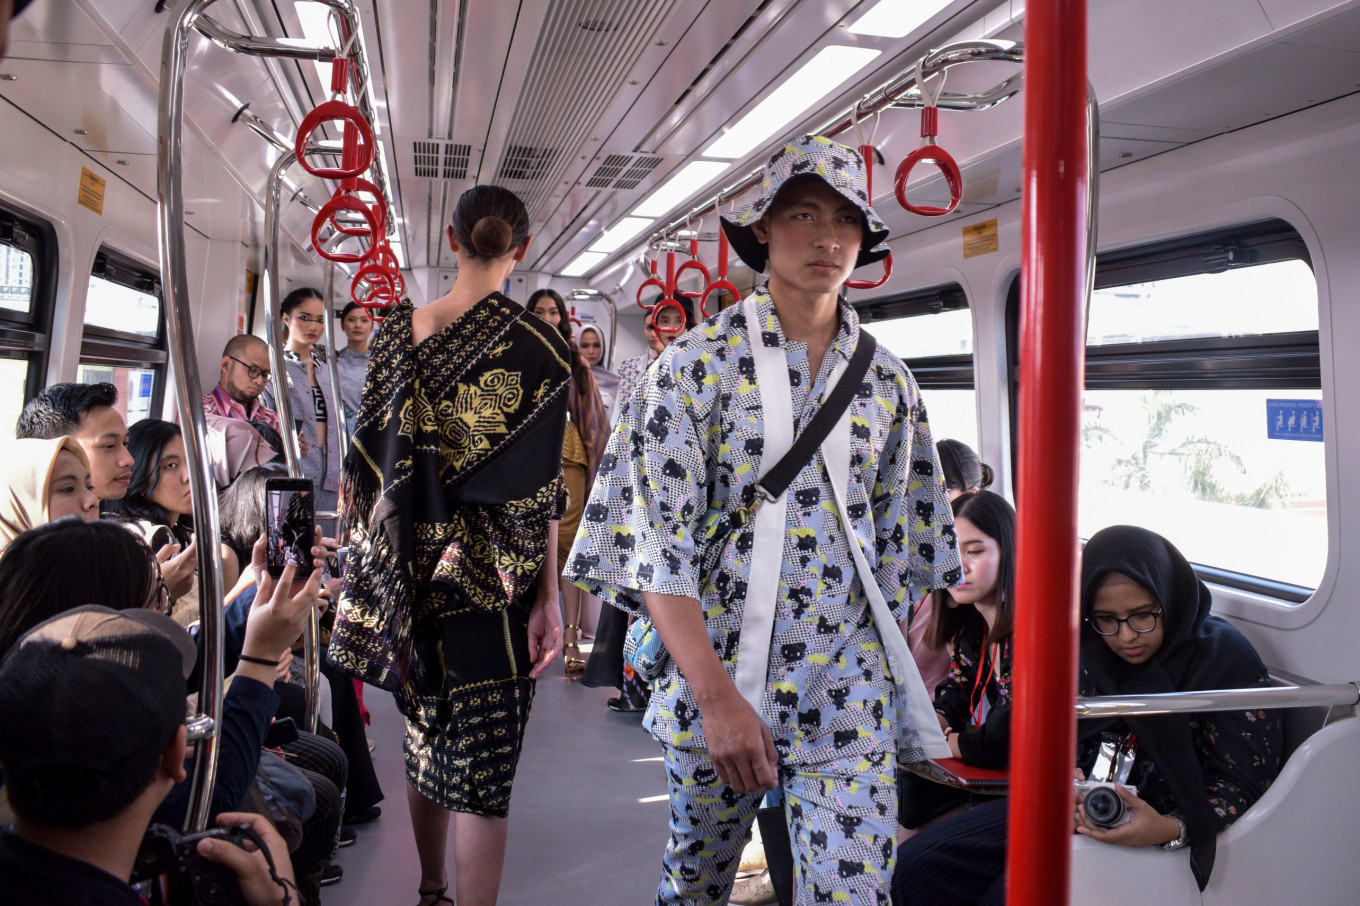 A model wears an outfit from AMOTSYAMSURIMUDA in collaboration with Hello Kitty on an LRT train during the Fashion Preview on Aug. 13.